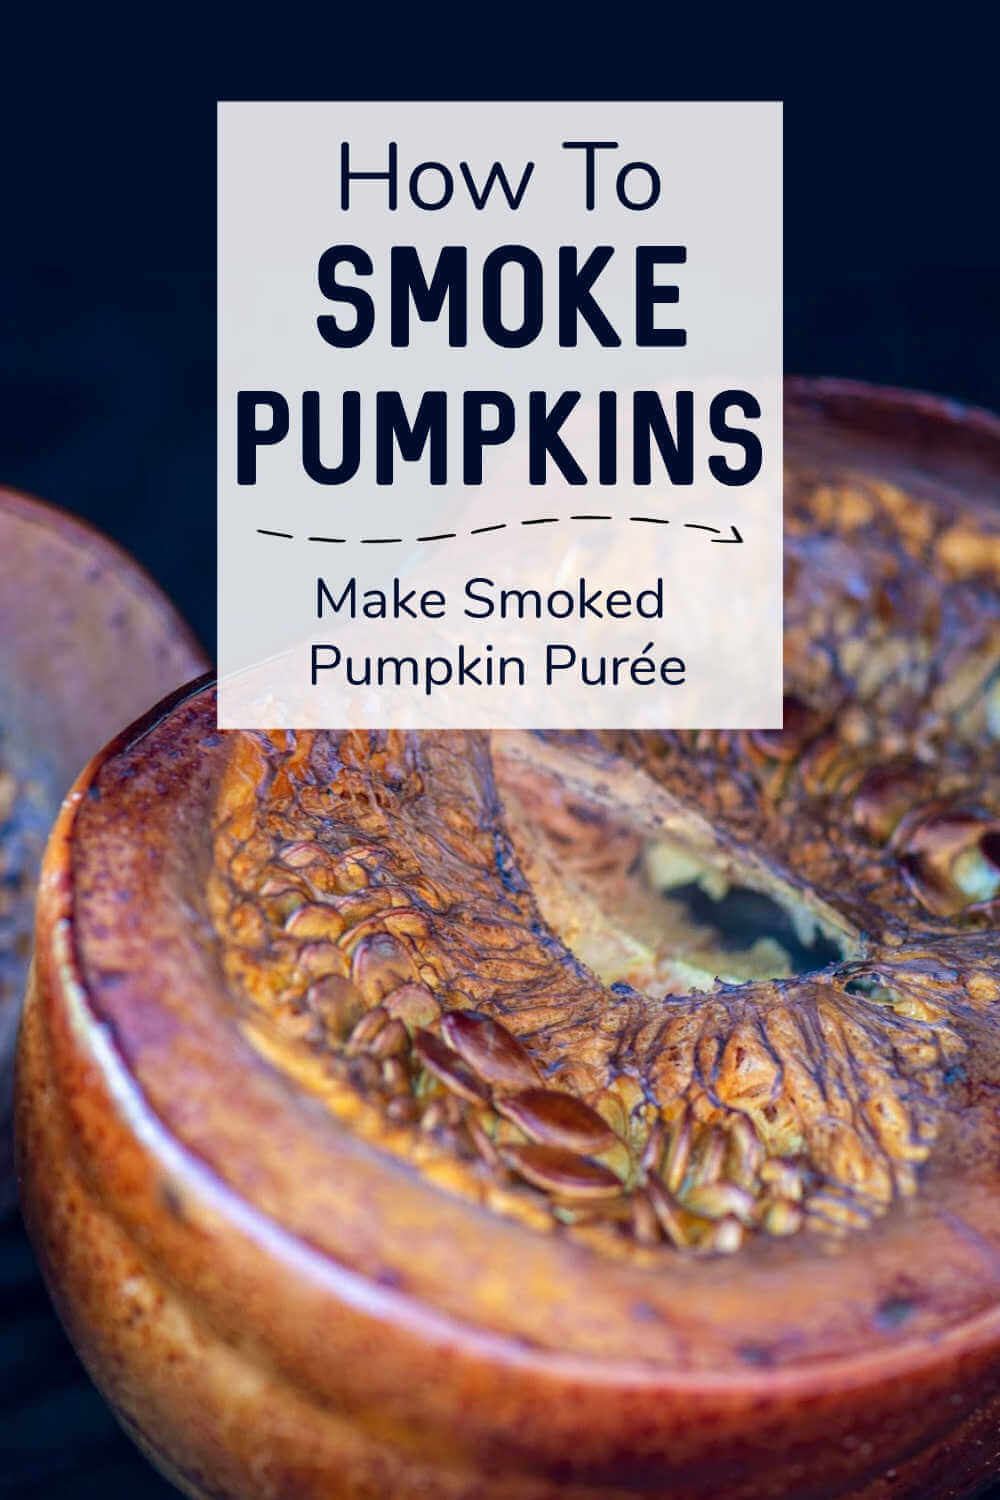 How To Smoke a Pumpkin